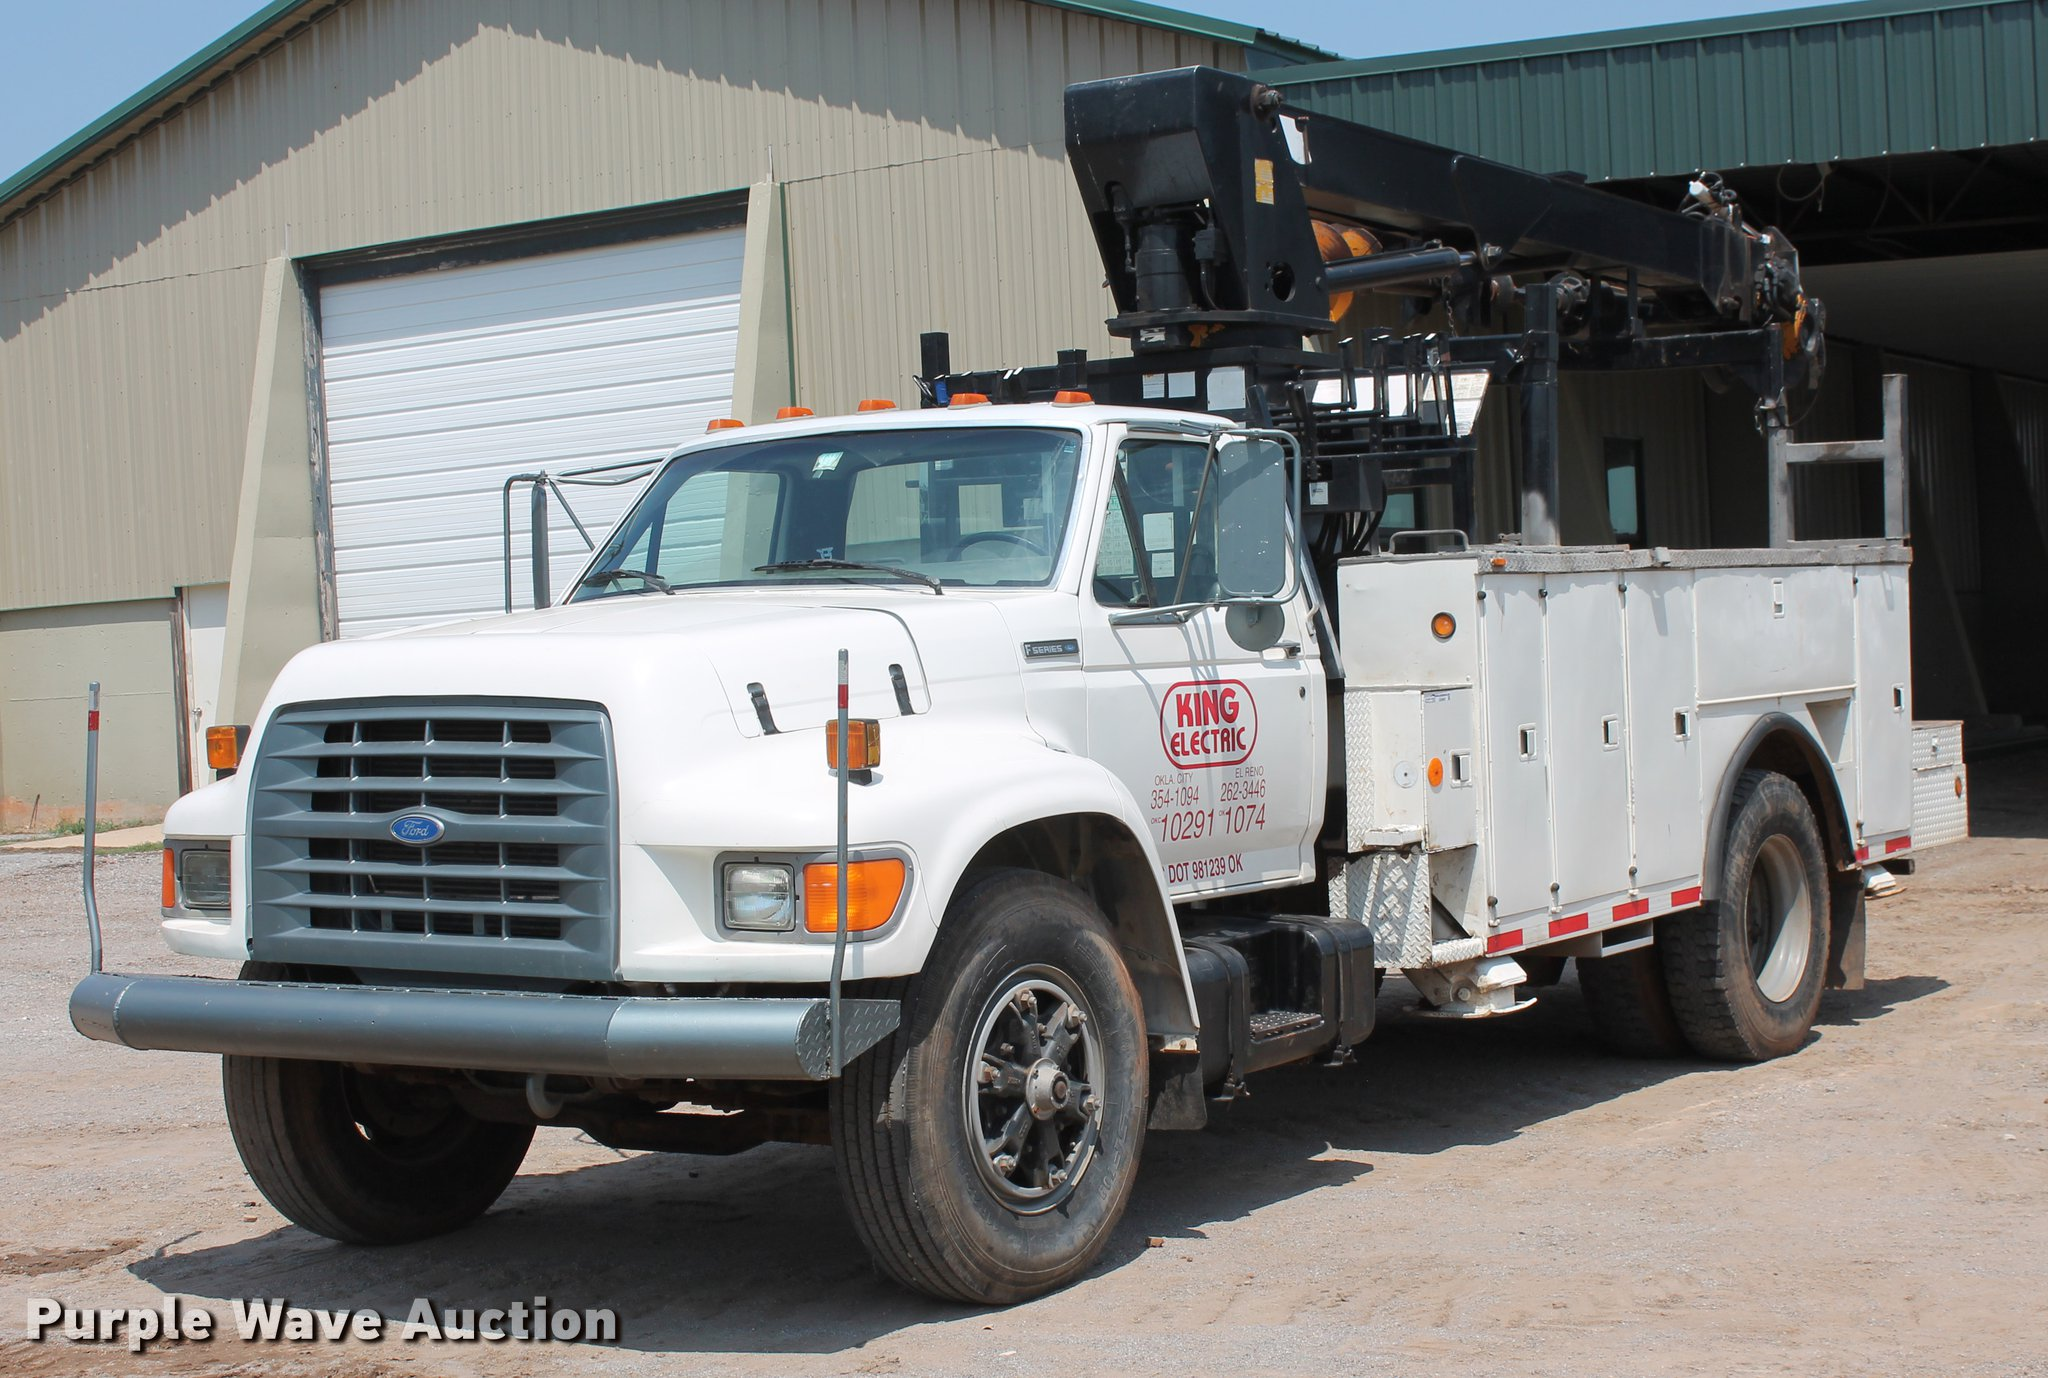 ... 1996 Ford F800 digger derrick truck Full size in new window ...